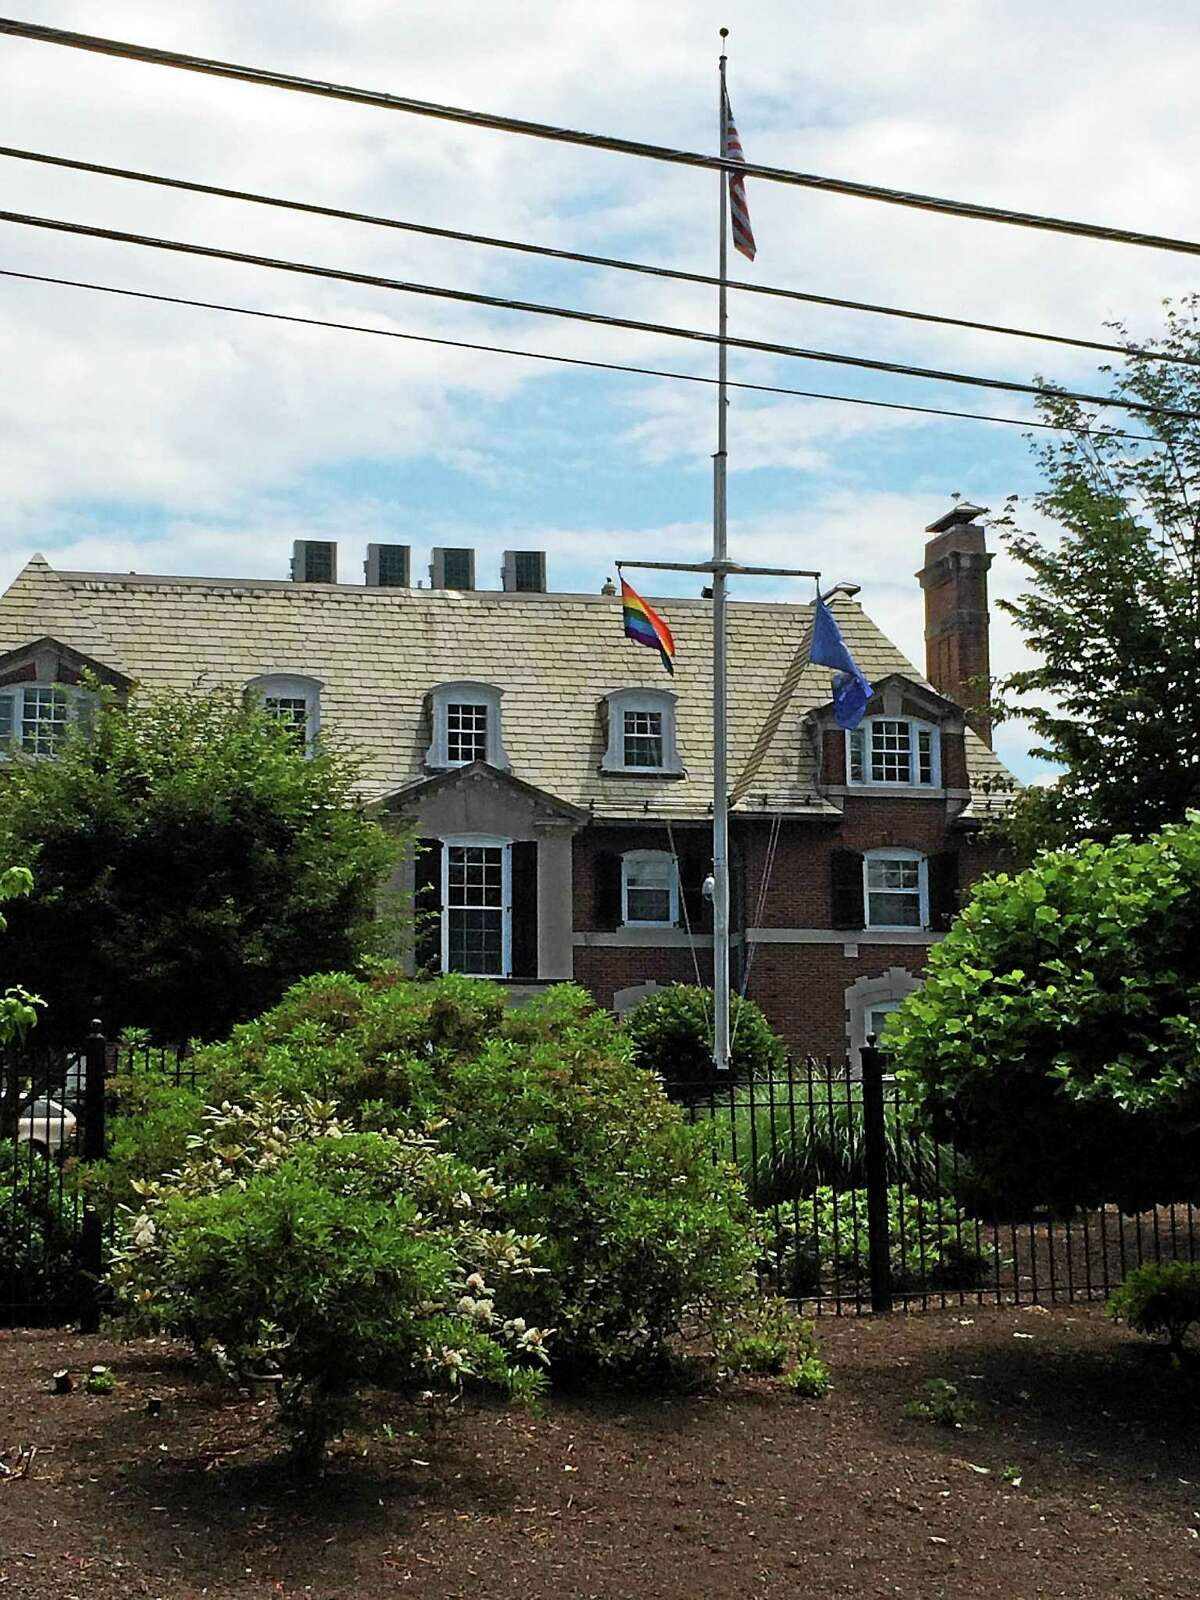 In recognition of the Supreme Court's ruling Friday, Gov. Dannel P. Malloy directed the LGBT pride flag to be flown at the Governorís Residence in Hartford.